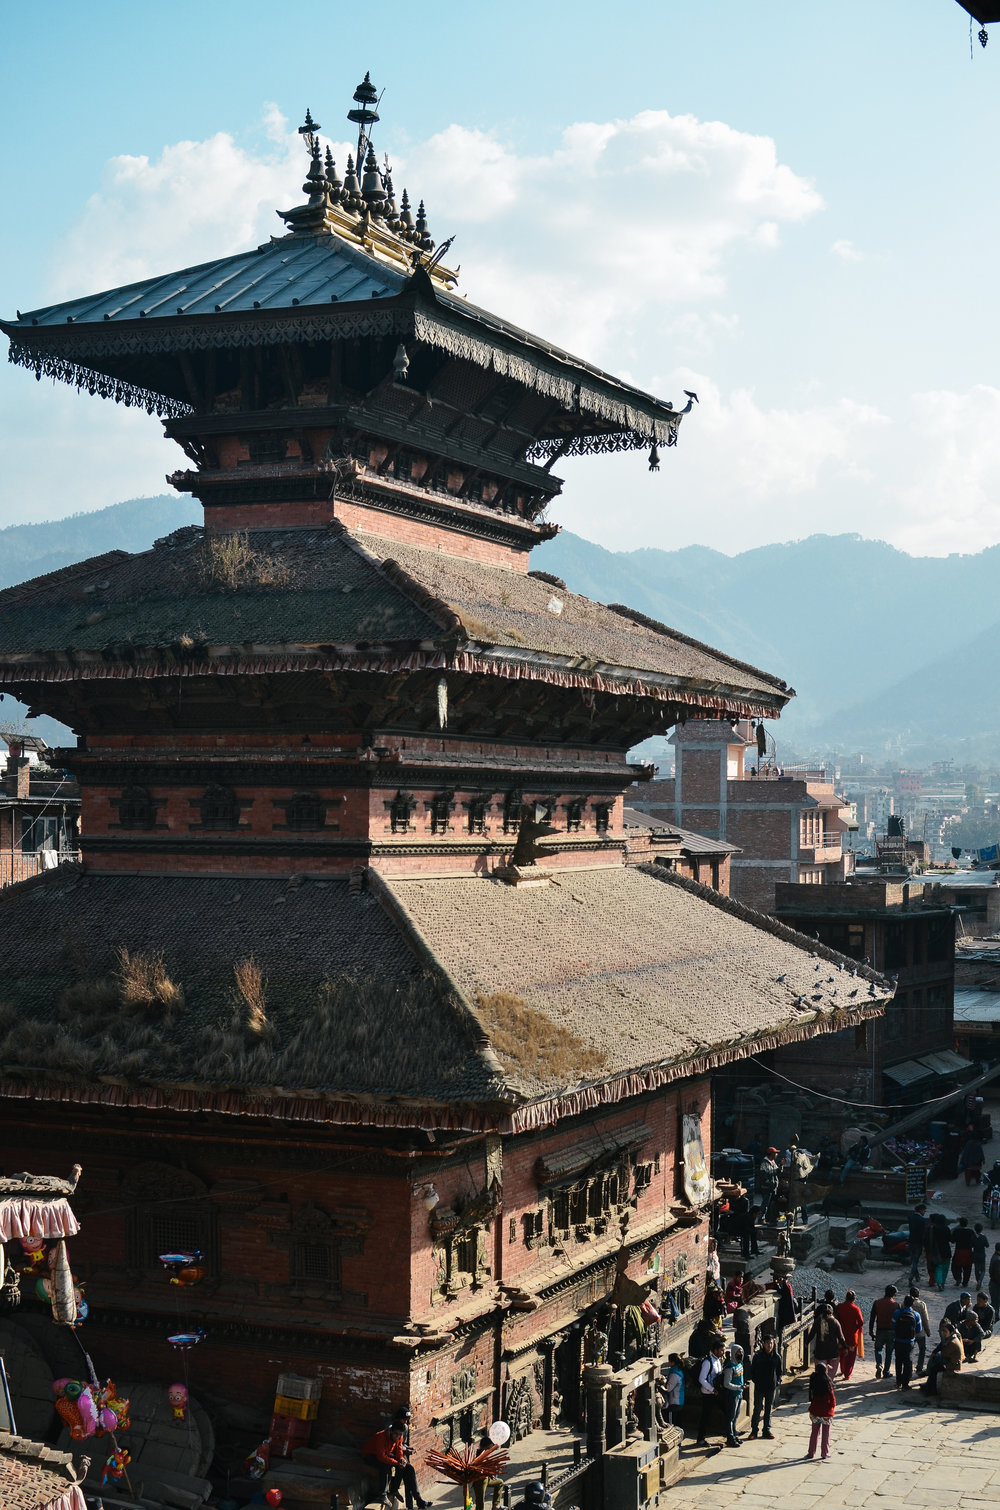 10-things-to-know-kathmandu-nepal-lifeonpine_DSC_0676.jpg